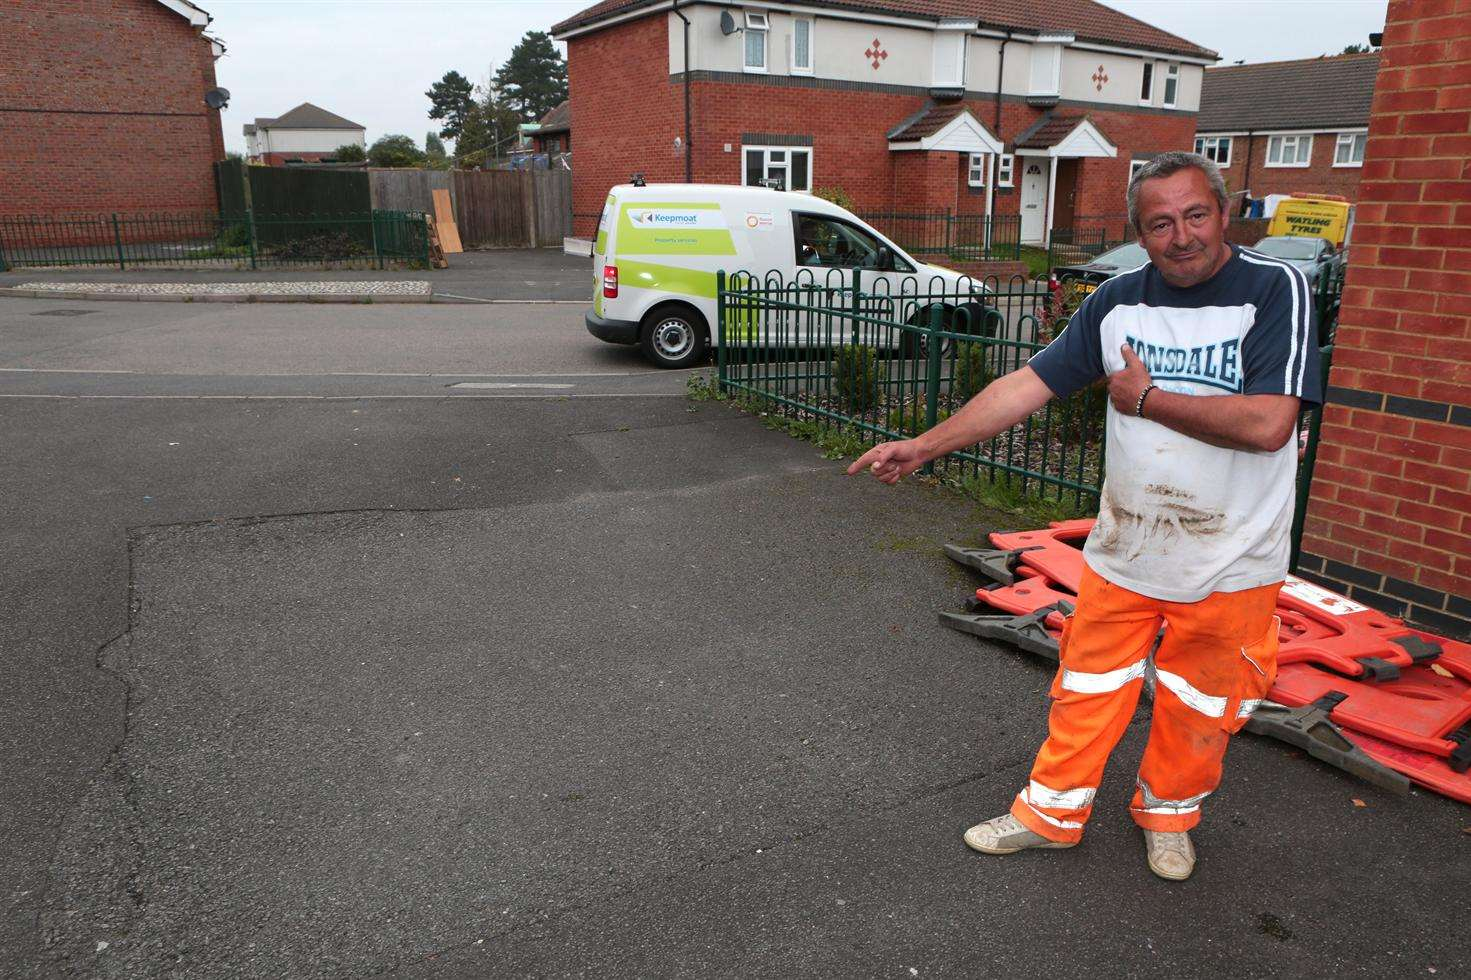 Lee Thwaite is a resident affected by the sinkhole in Springwood Road, Barming